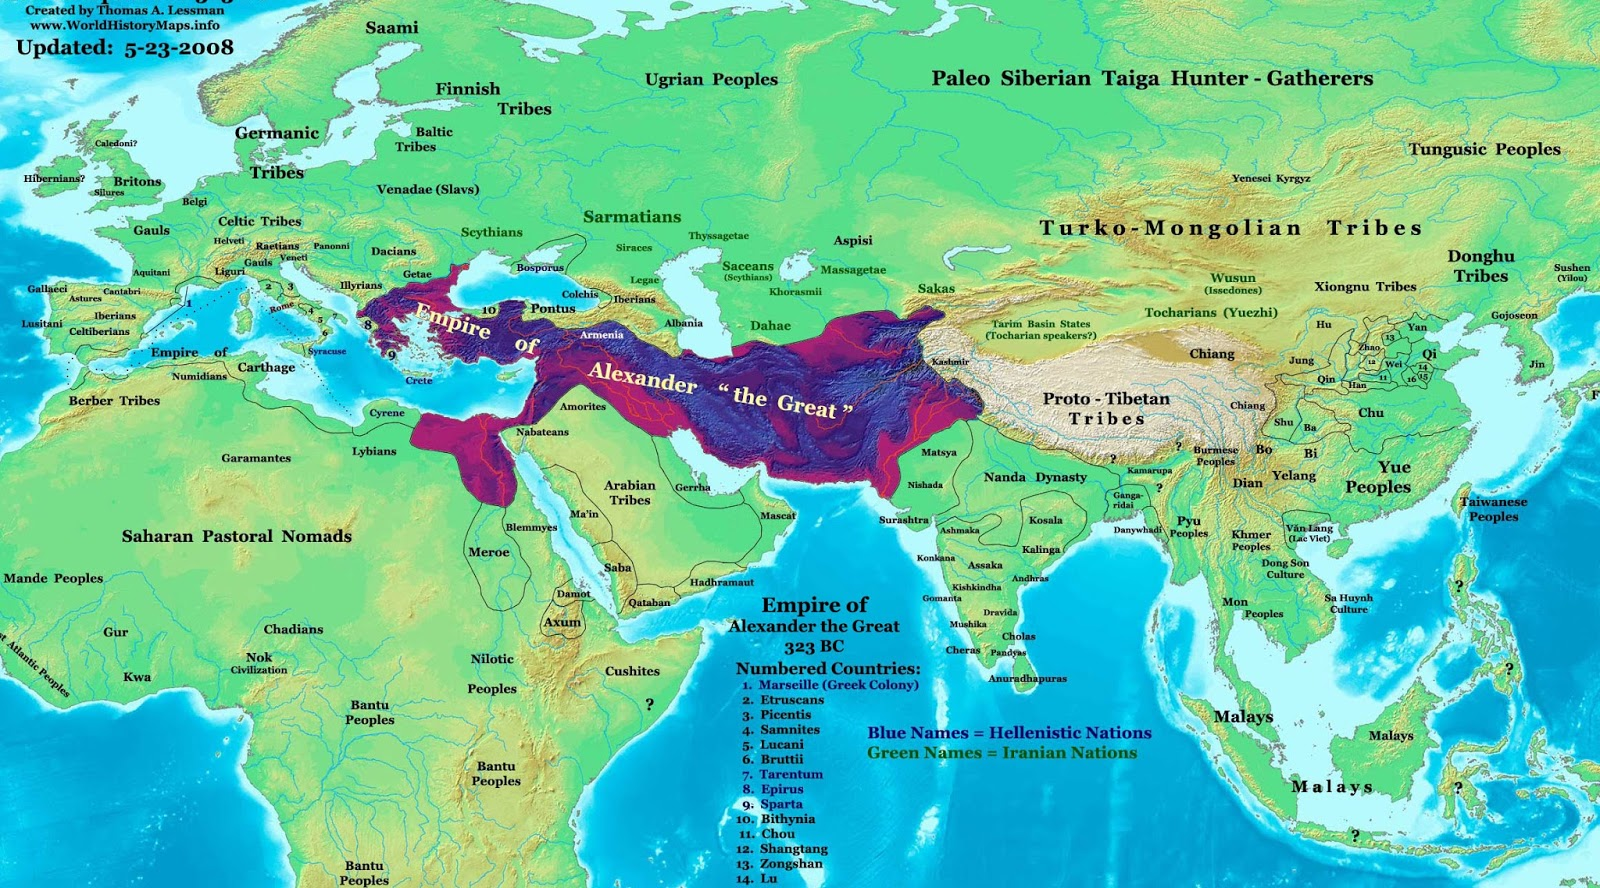 The Historian's Hut Articles: Ancient Pontus and the 'Poison King' on byzantine empire map, alexander the great map, ptolemaic kingdom map,